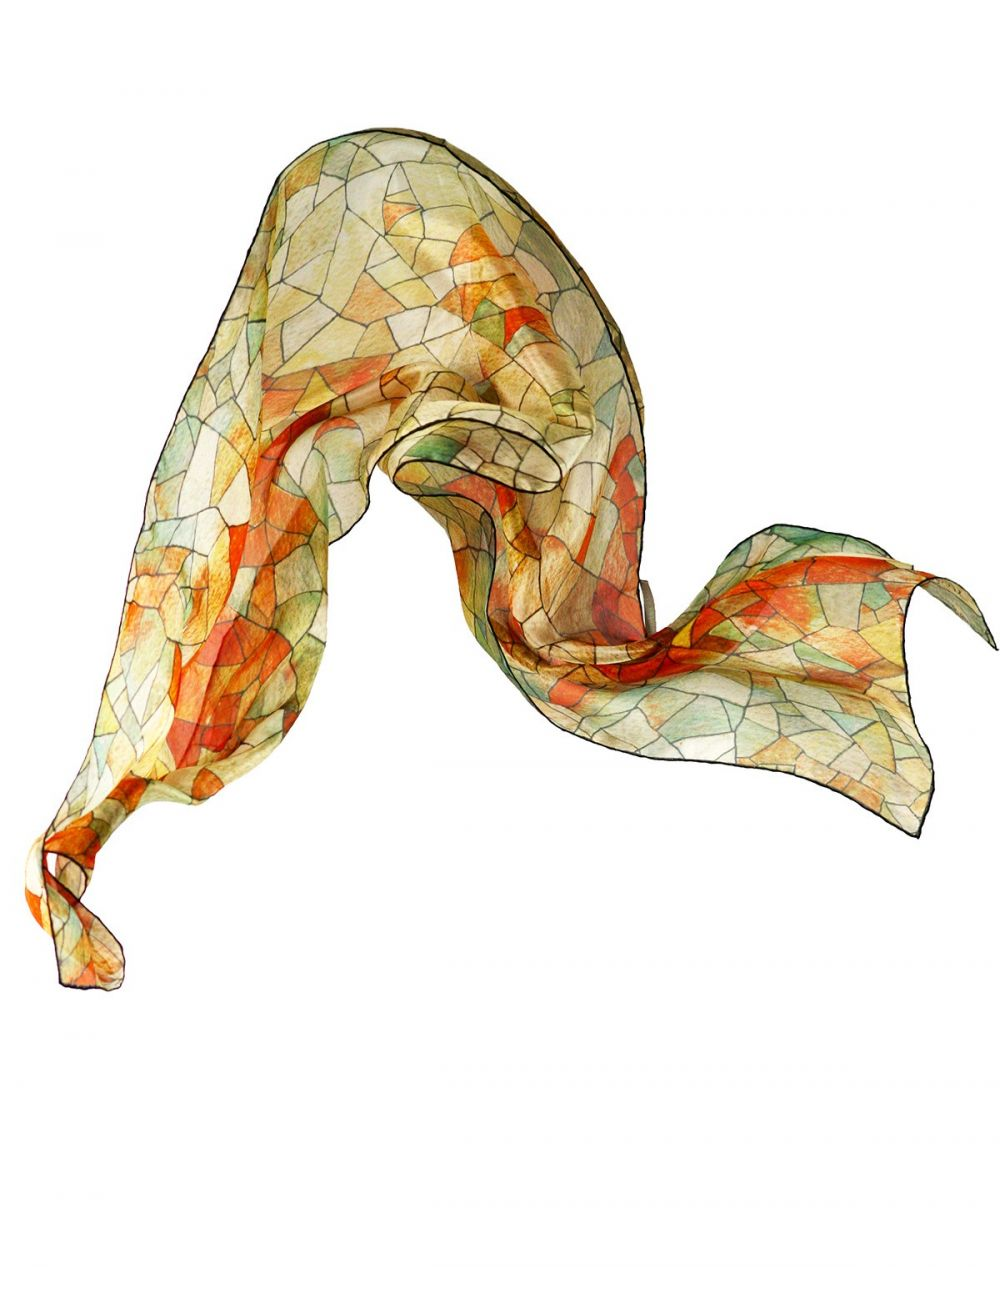 """Heaven and Earth"", silk scarf inspired in Gaudí's art. Fall colors on a geometric design."